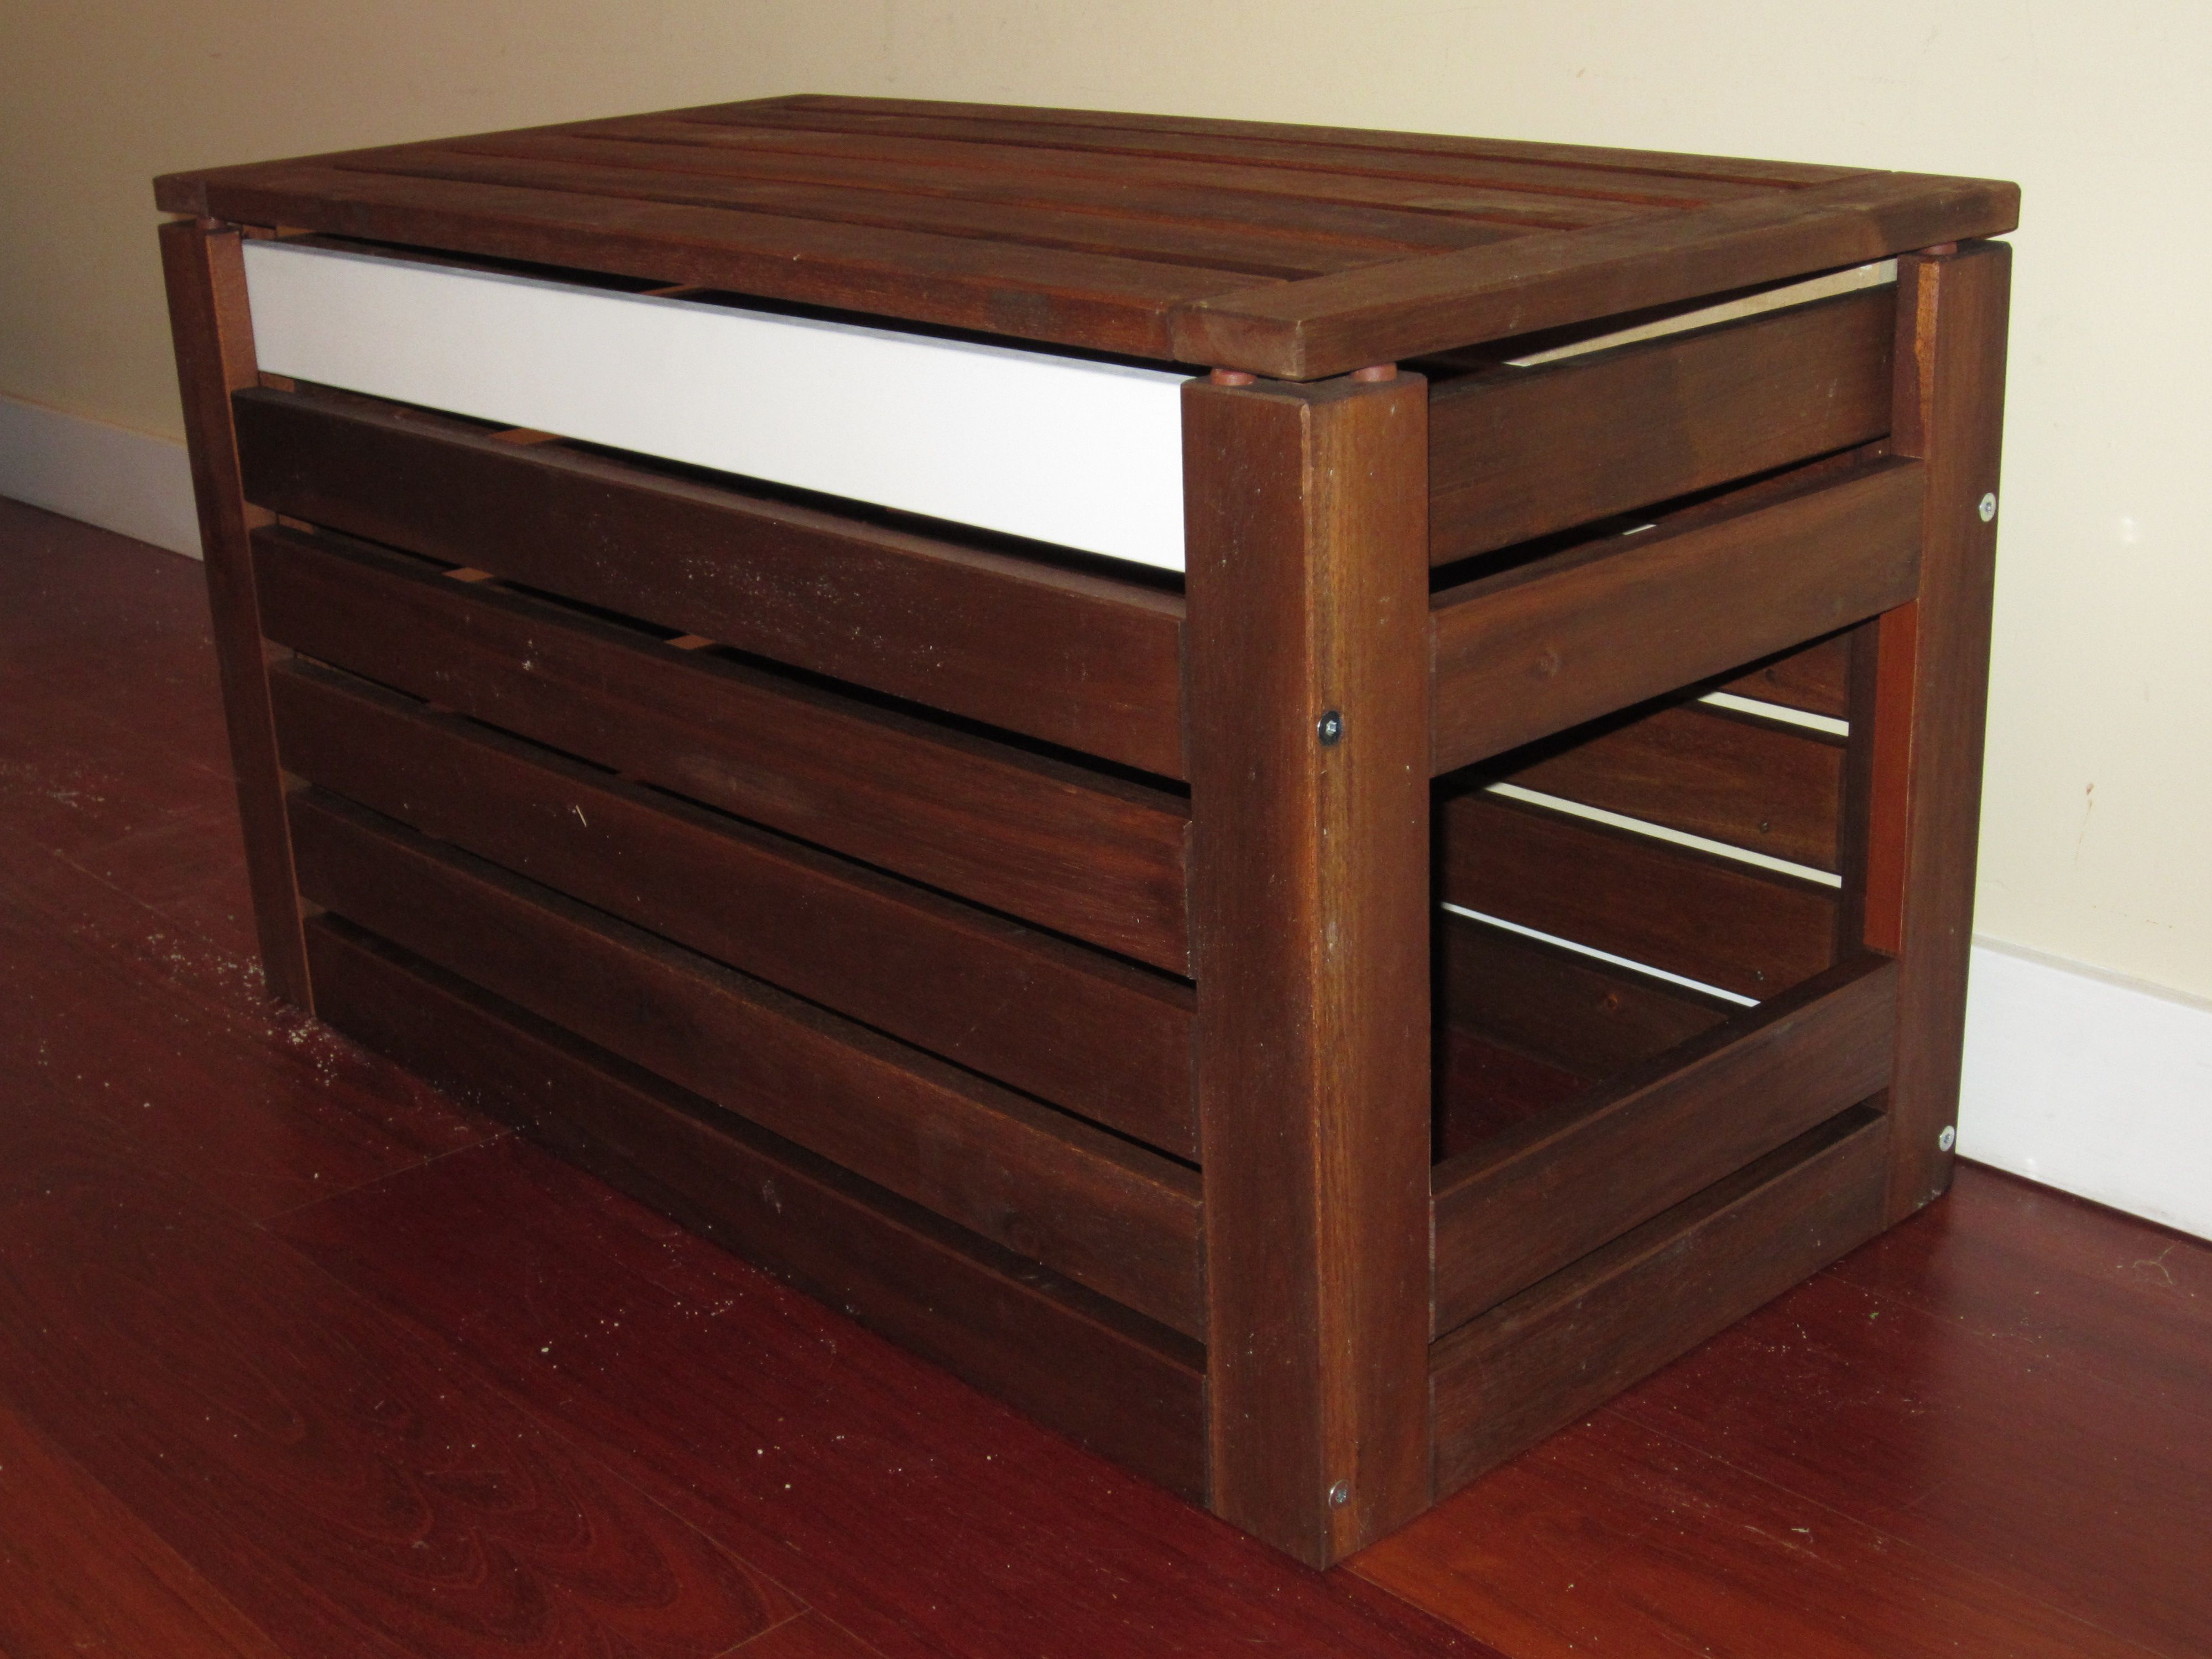 Build a wooden crate to hide the cat litter box maybe